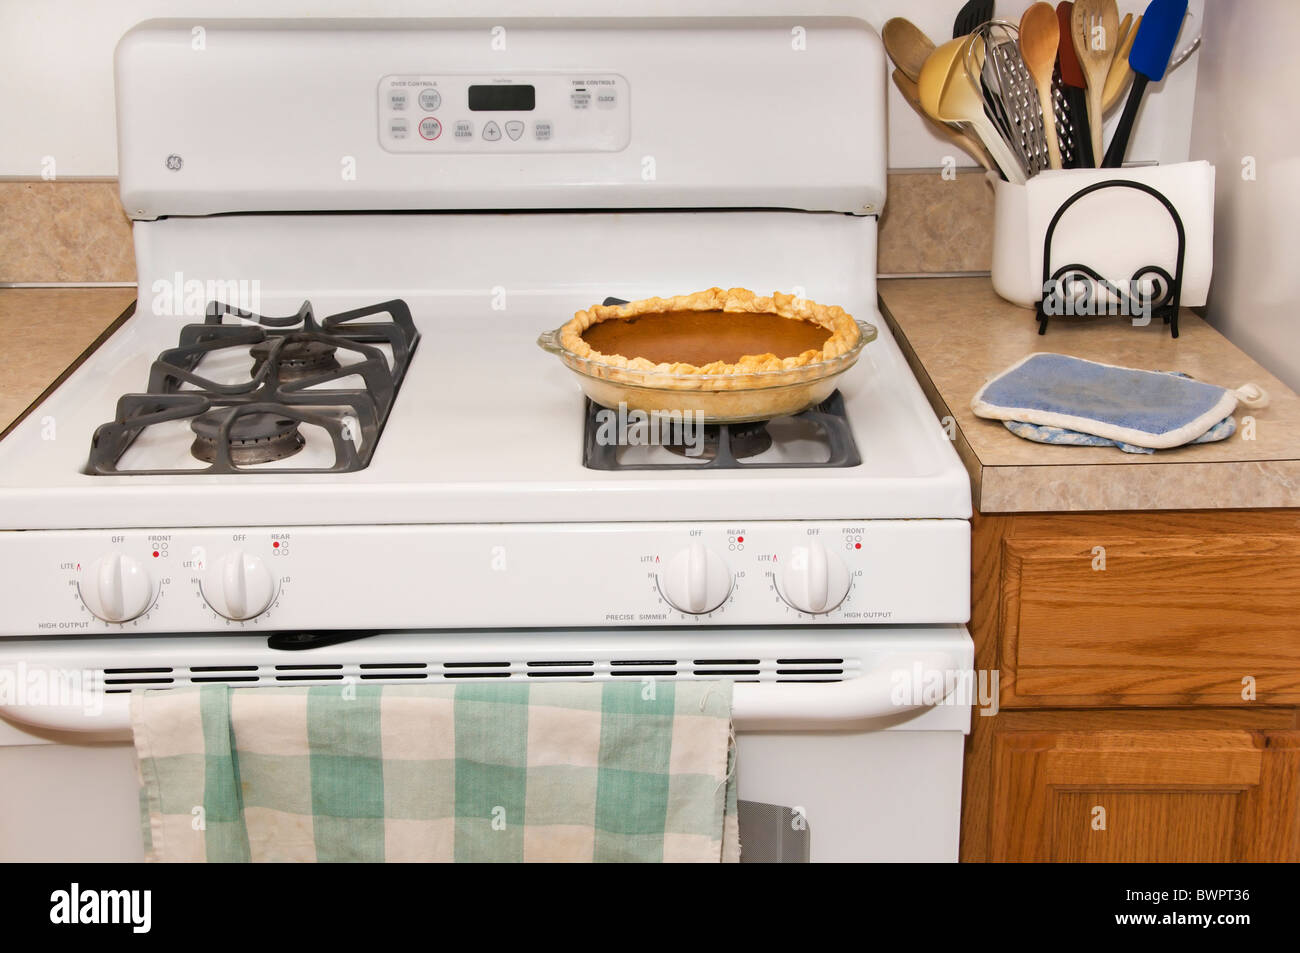 A freshly baked homemade pumpkin pie cools on top of the stove in a ...